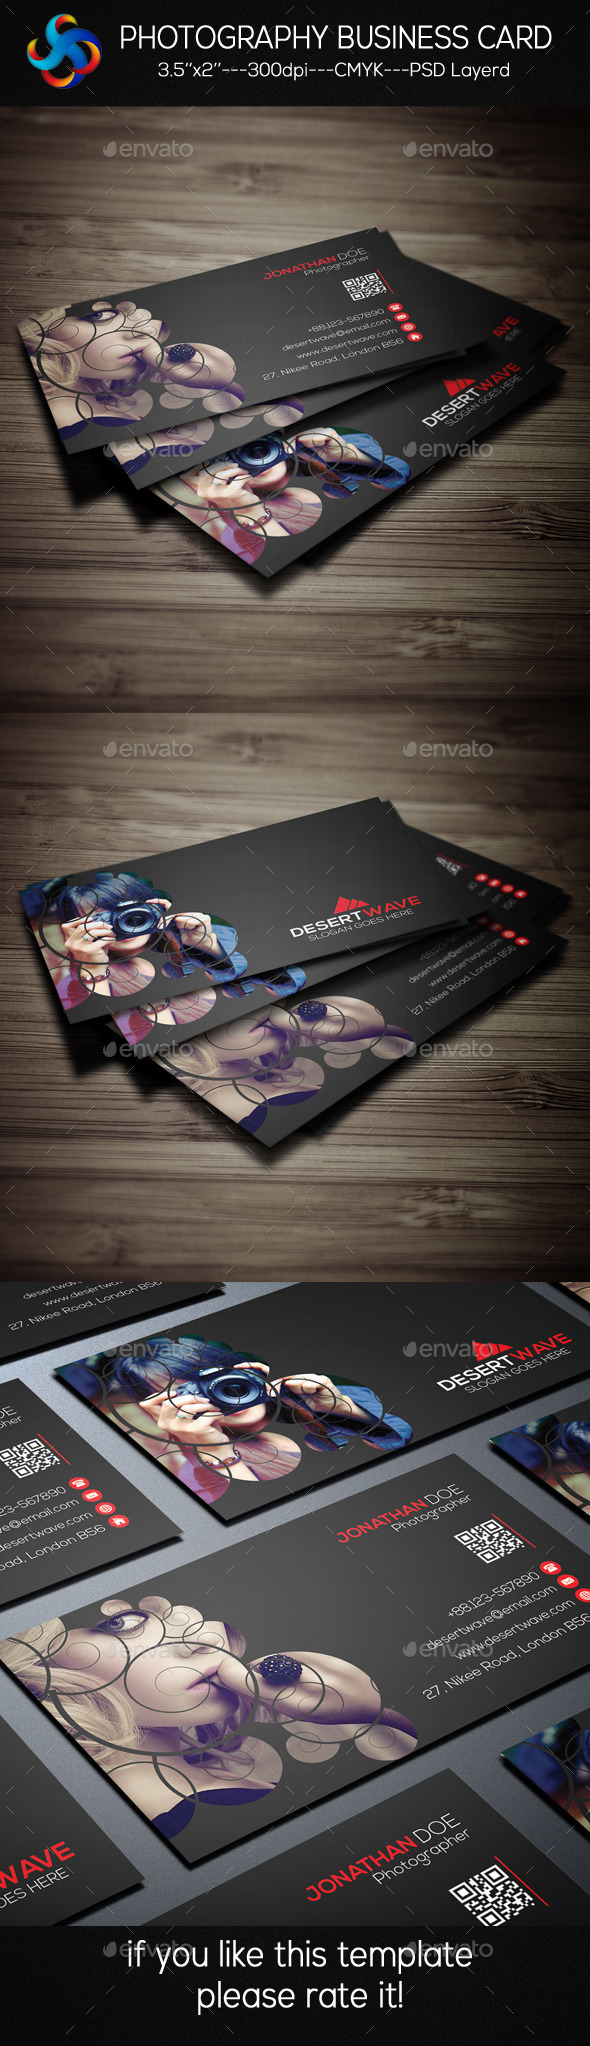 GraphicRiver Photography Business Card 9303762